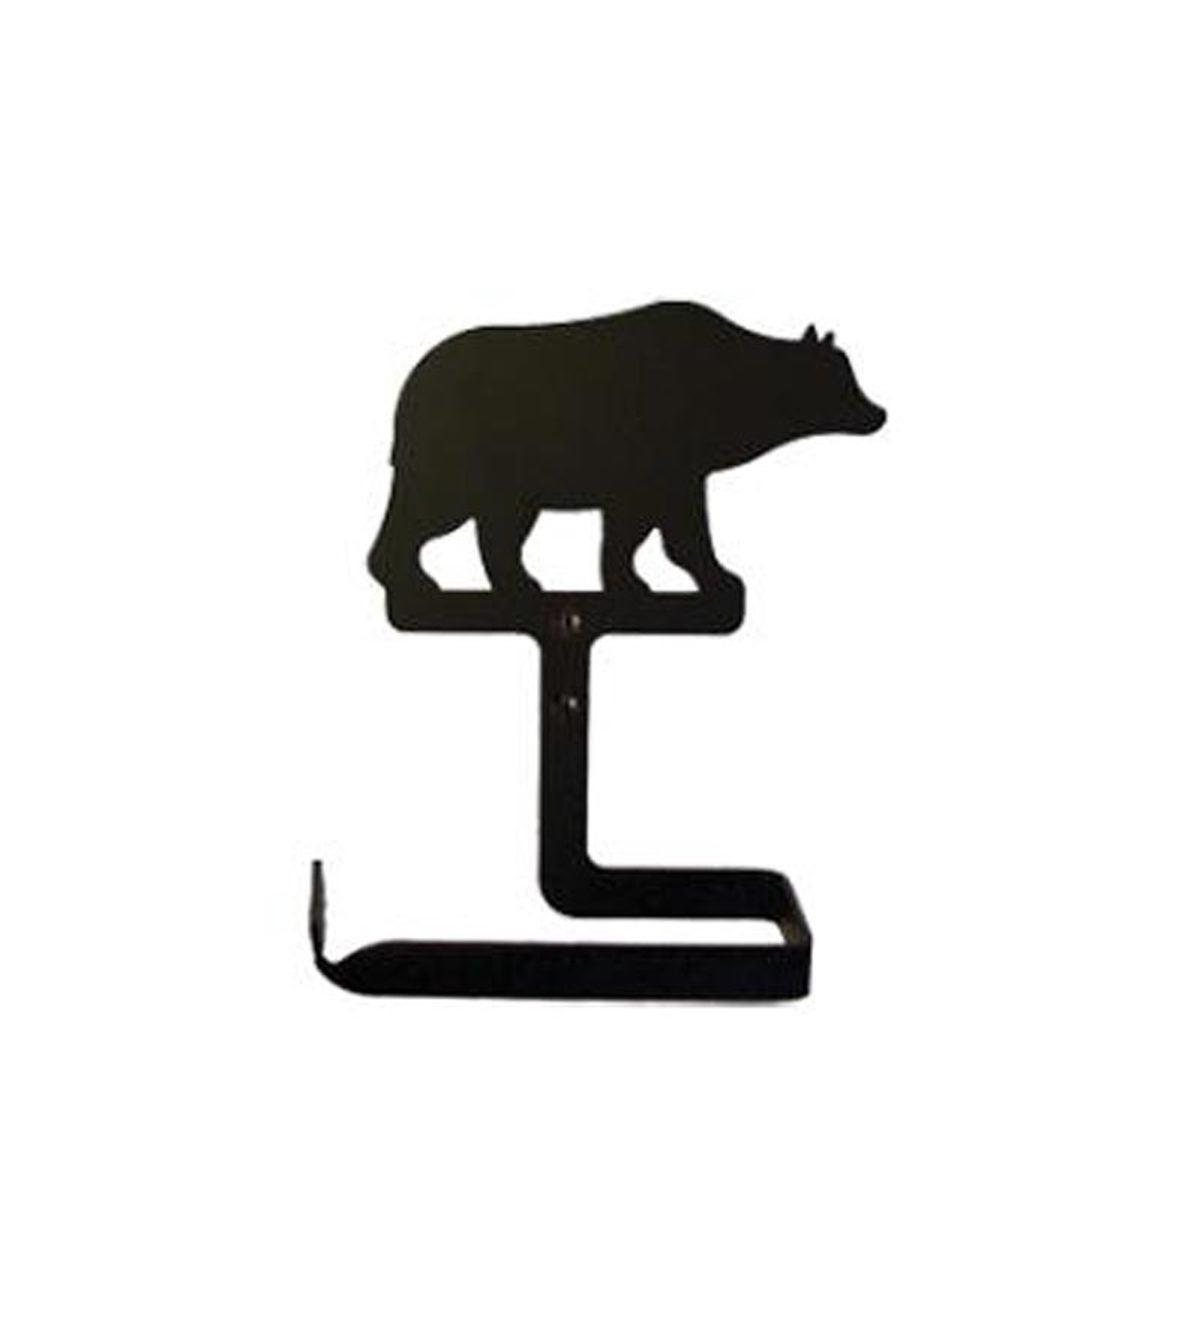 USA-Made Wrought Iron Traditional Toilet Paper Holder - Bear